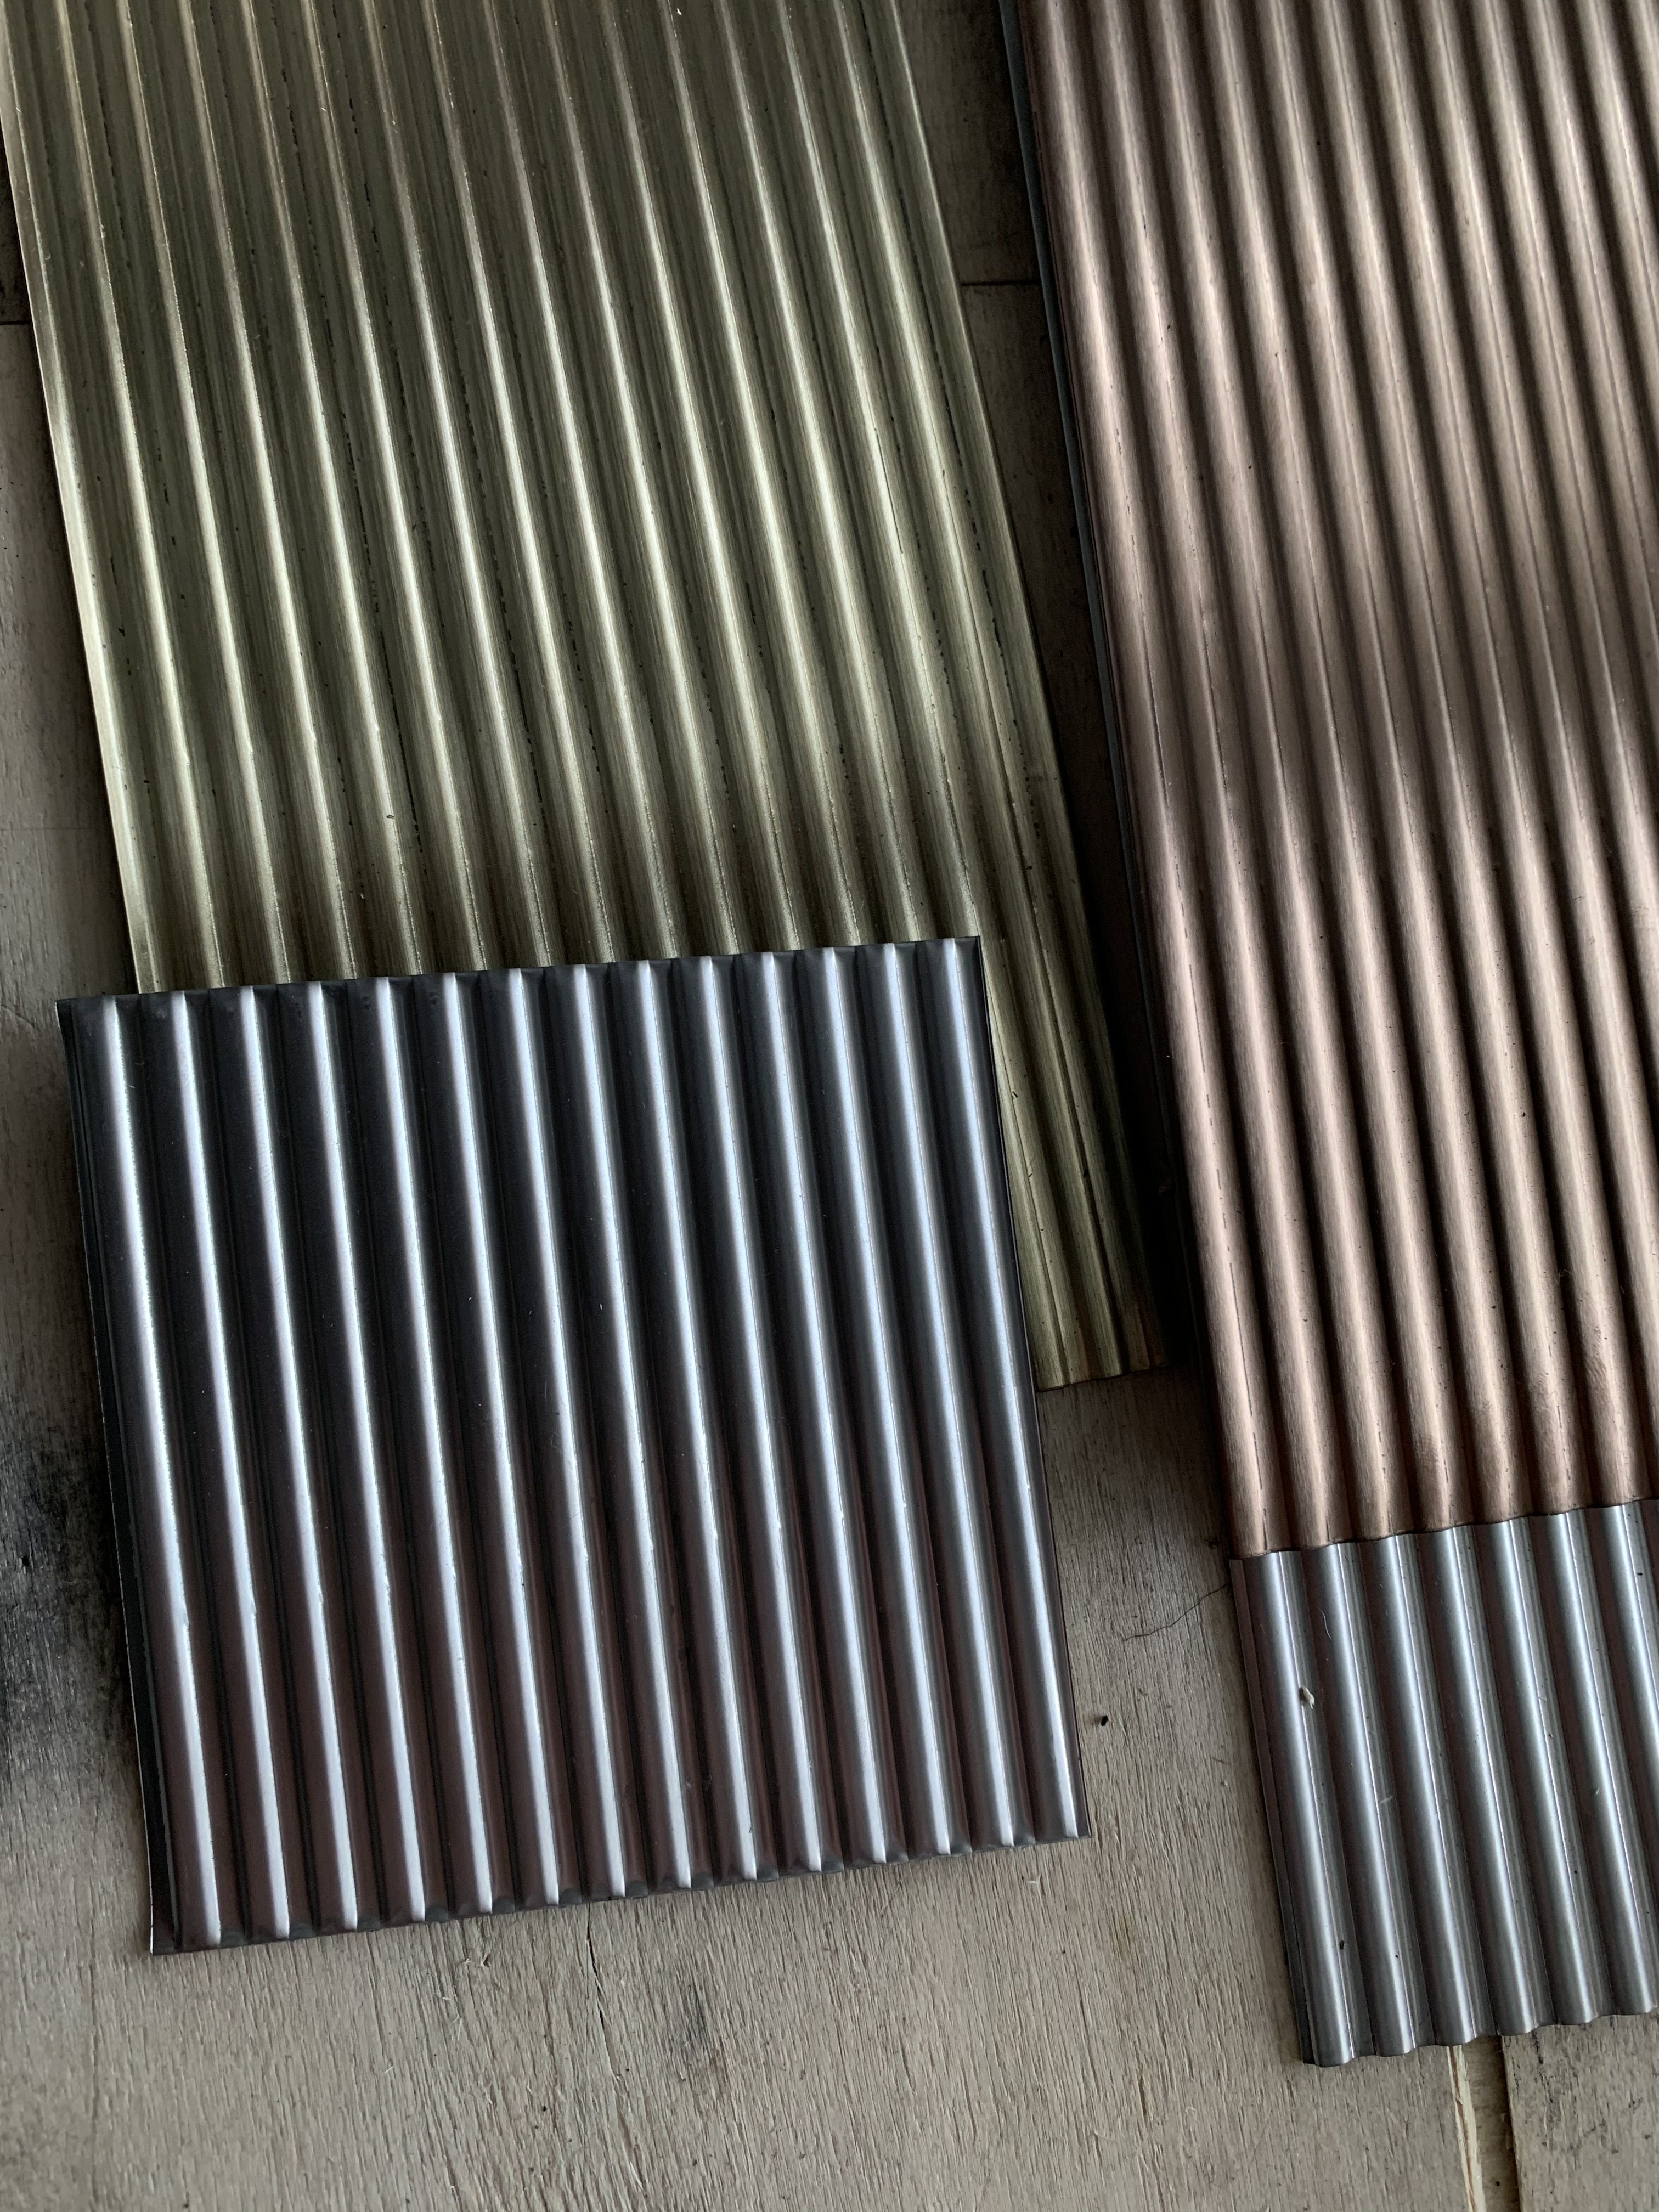 Pin On High End Stainless Steel Embossed Sheets